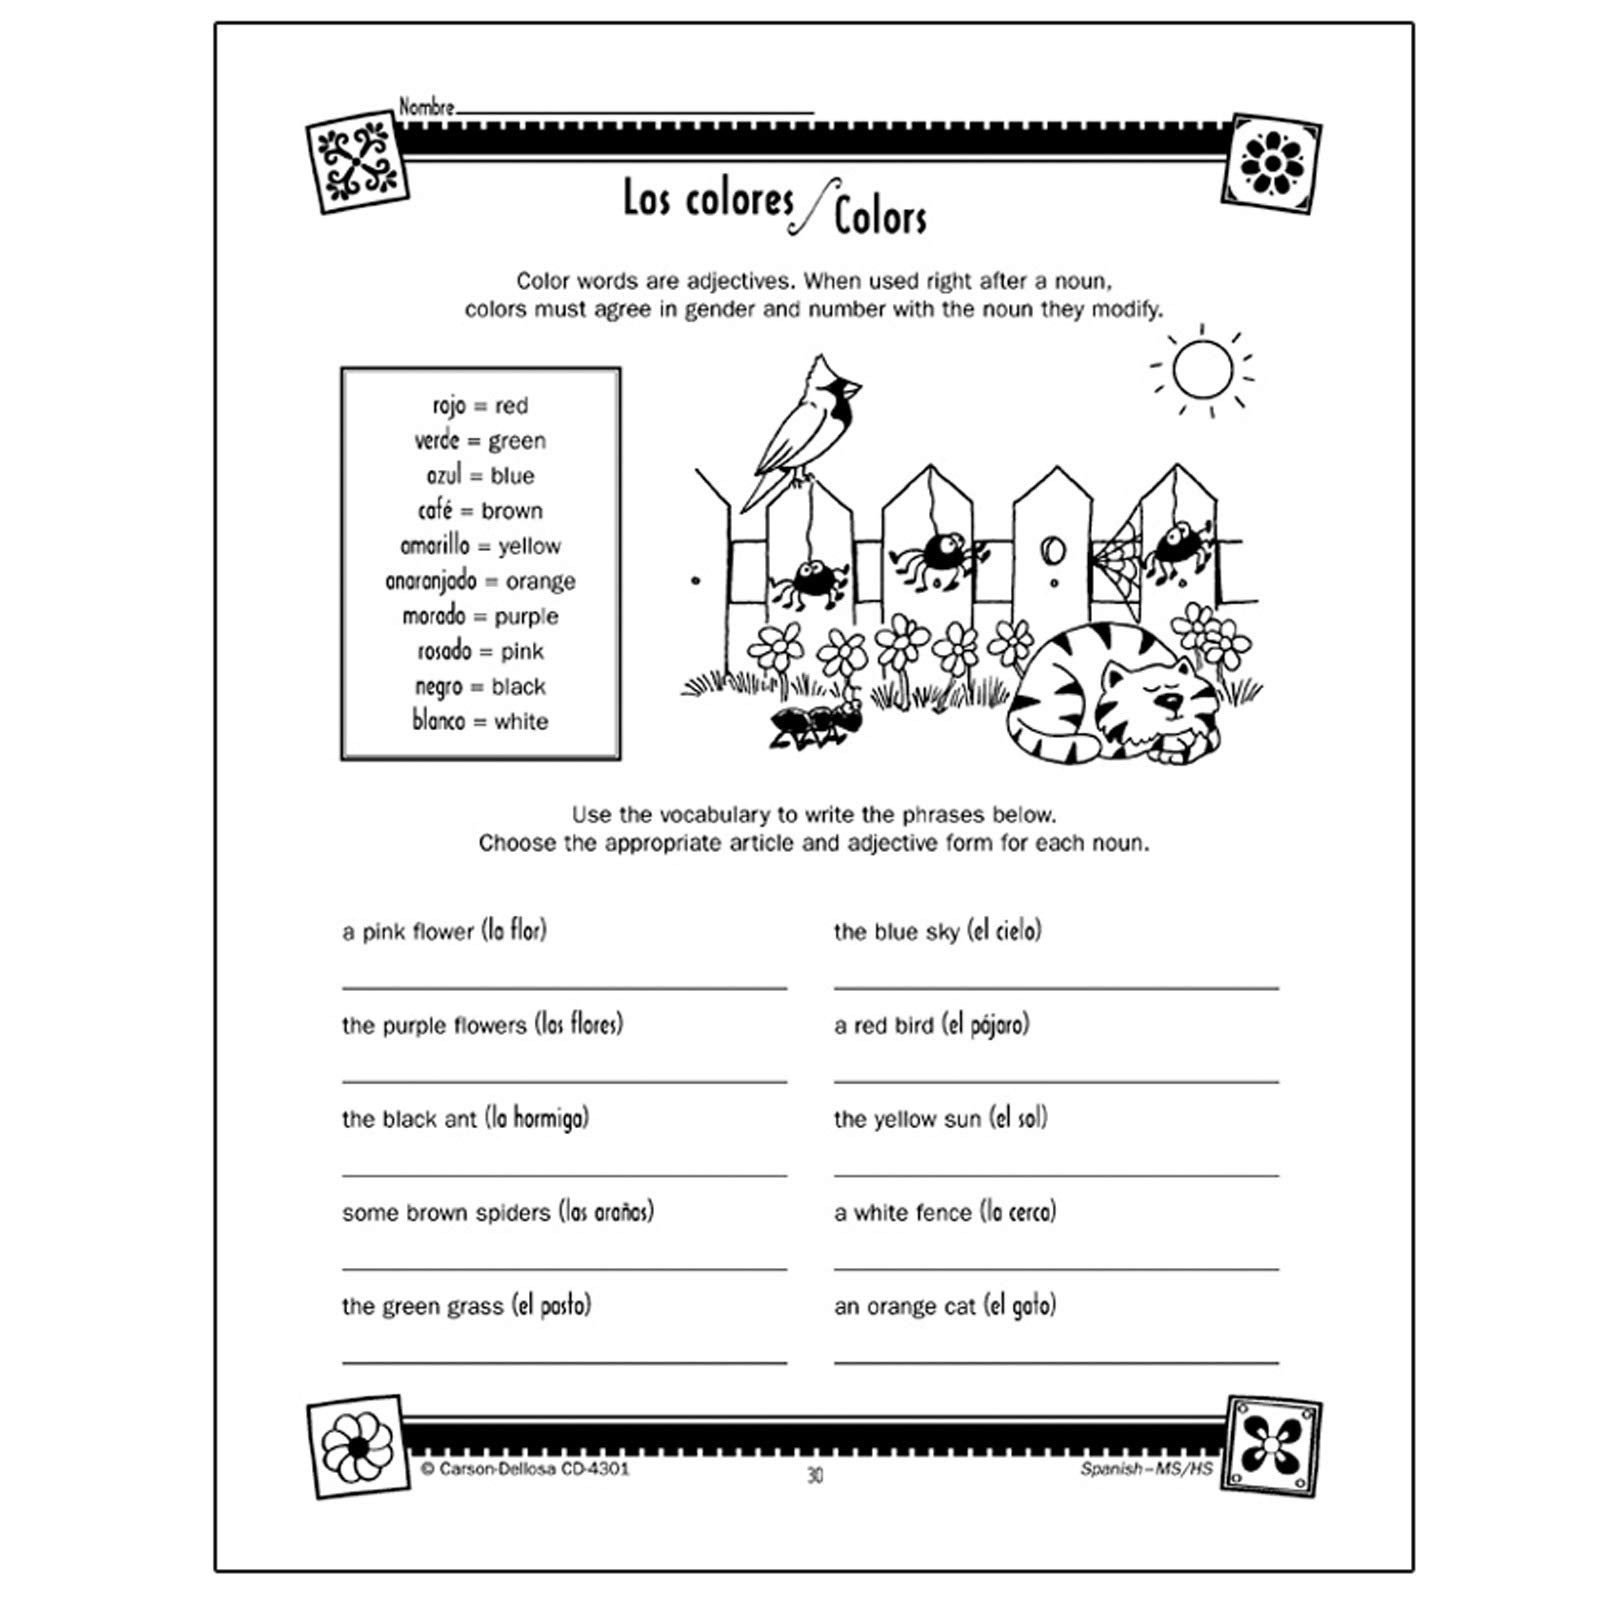 8th Grade Spanish Worksheets Carson Dellosa Skills for Success Spanish Workbook